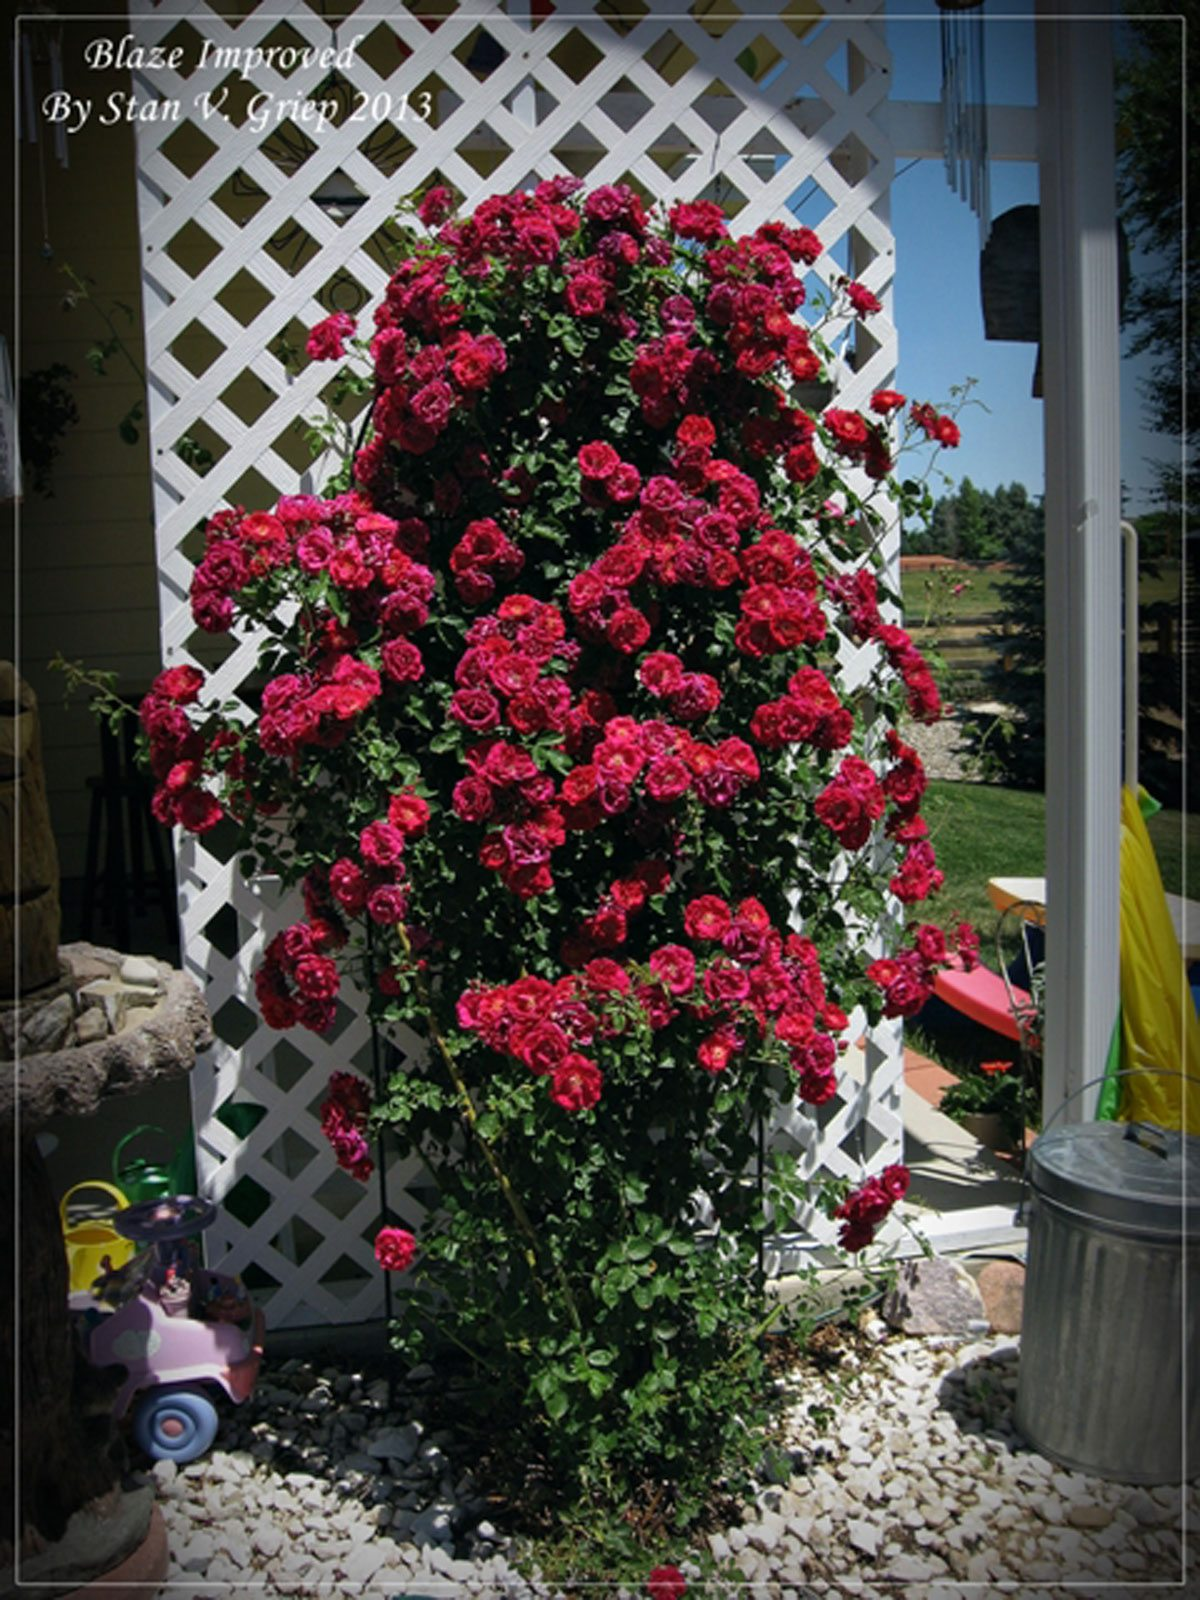 Training roses on structures how to train a climbing rose bush - Climbing rose trellis ...